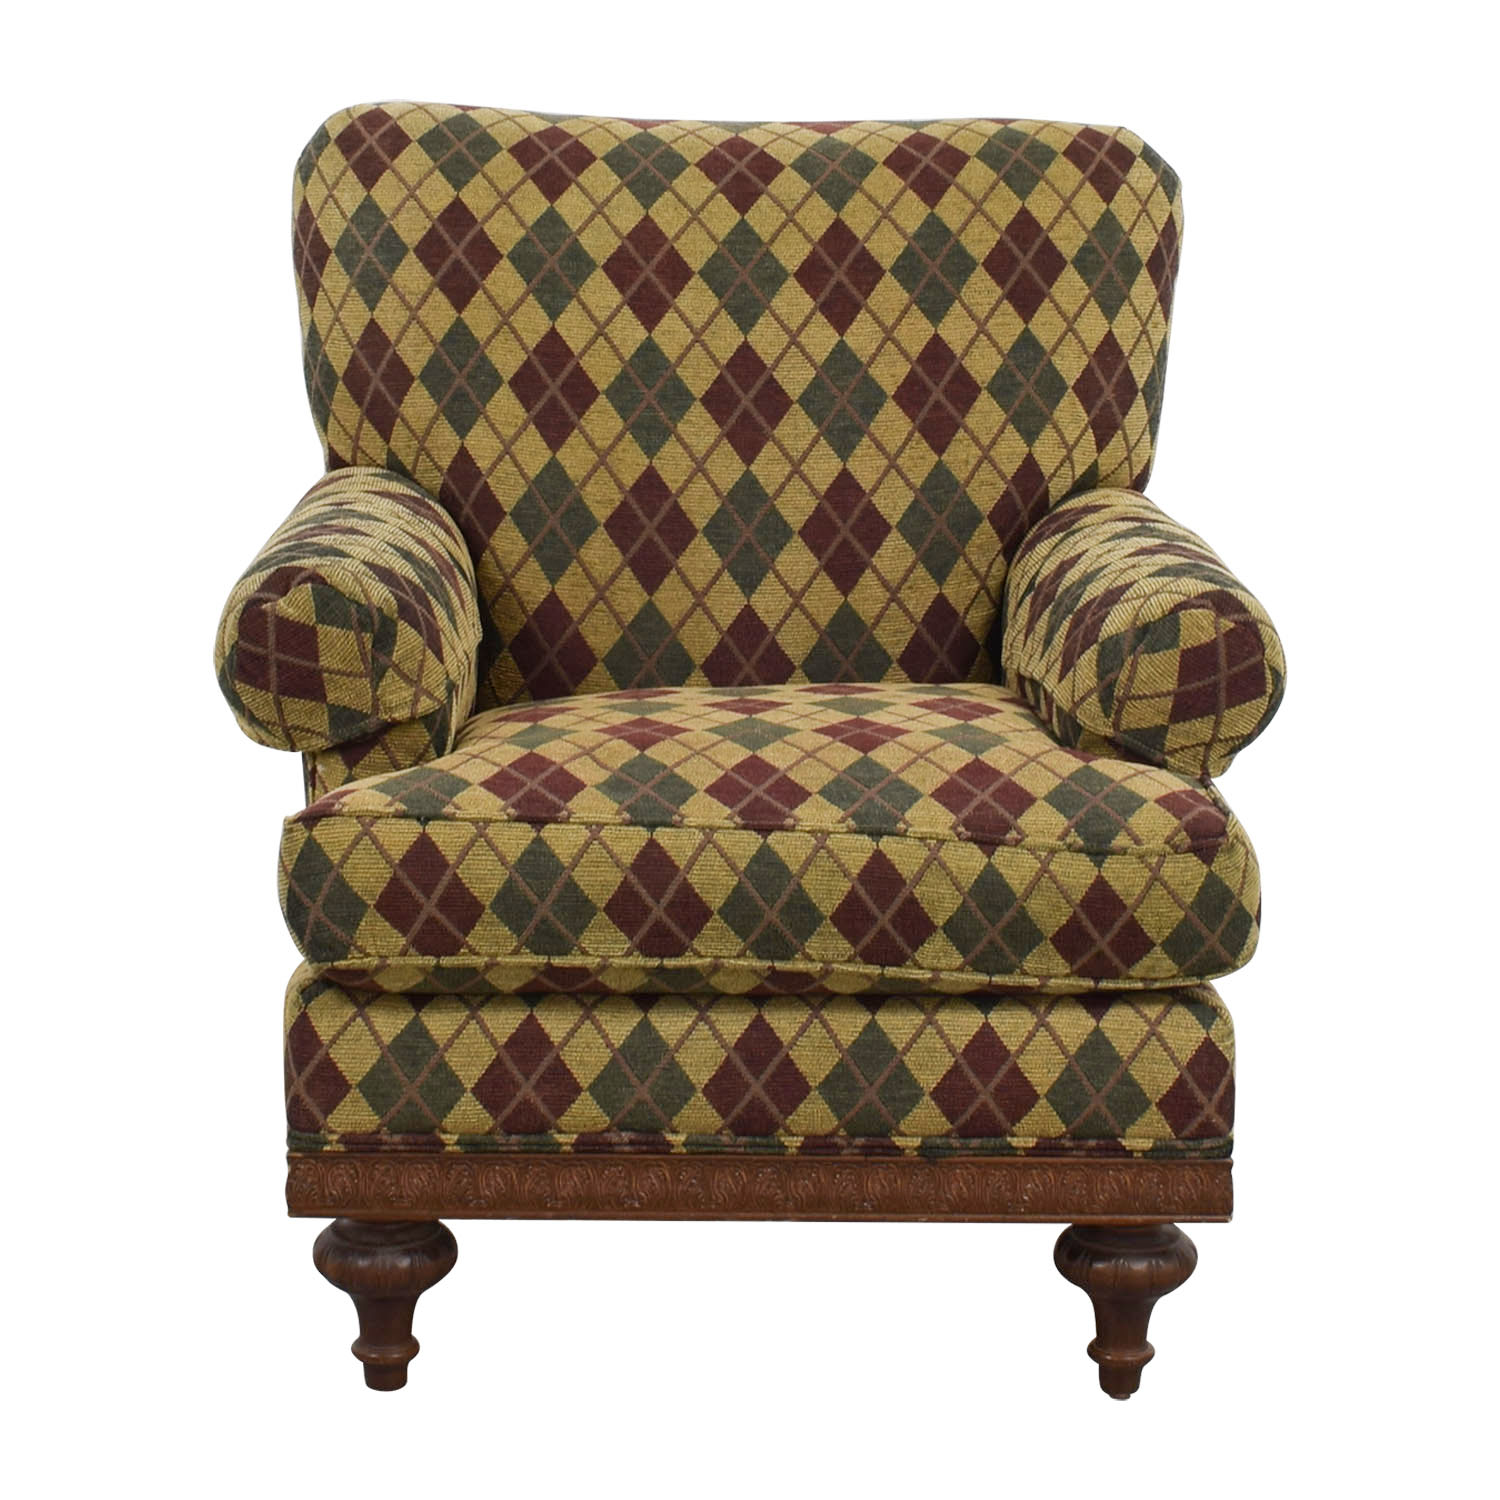 Domain Home Argyle Upholstered Arm Chair discount